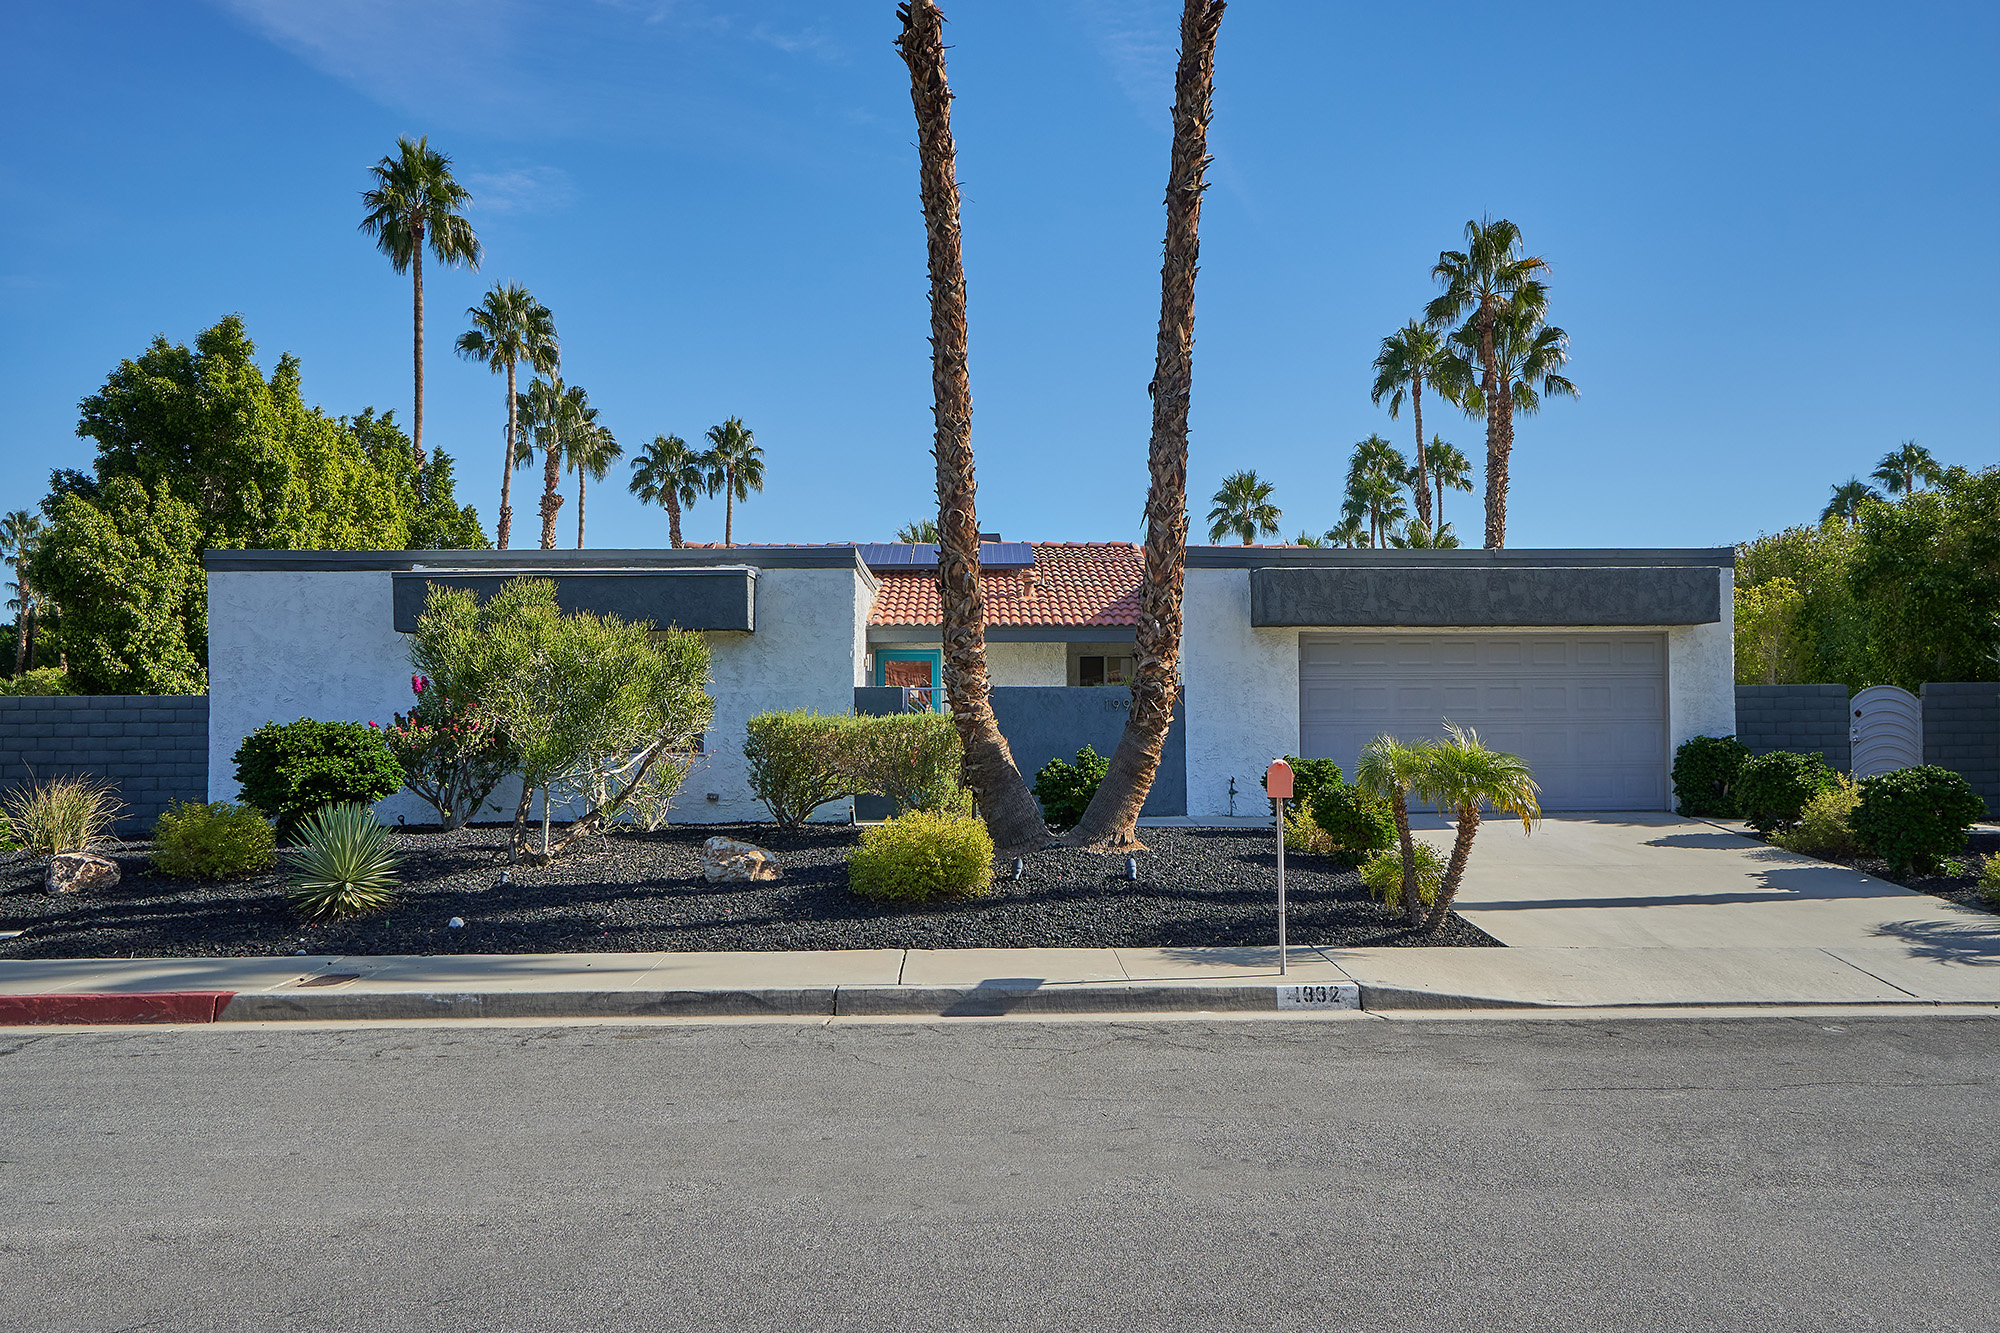 An exterior view of a 1970s home with a paved street in front. The white home has a tiled roof and palm trees surrounding it.